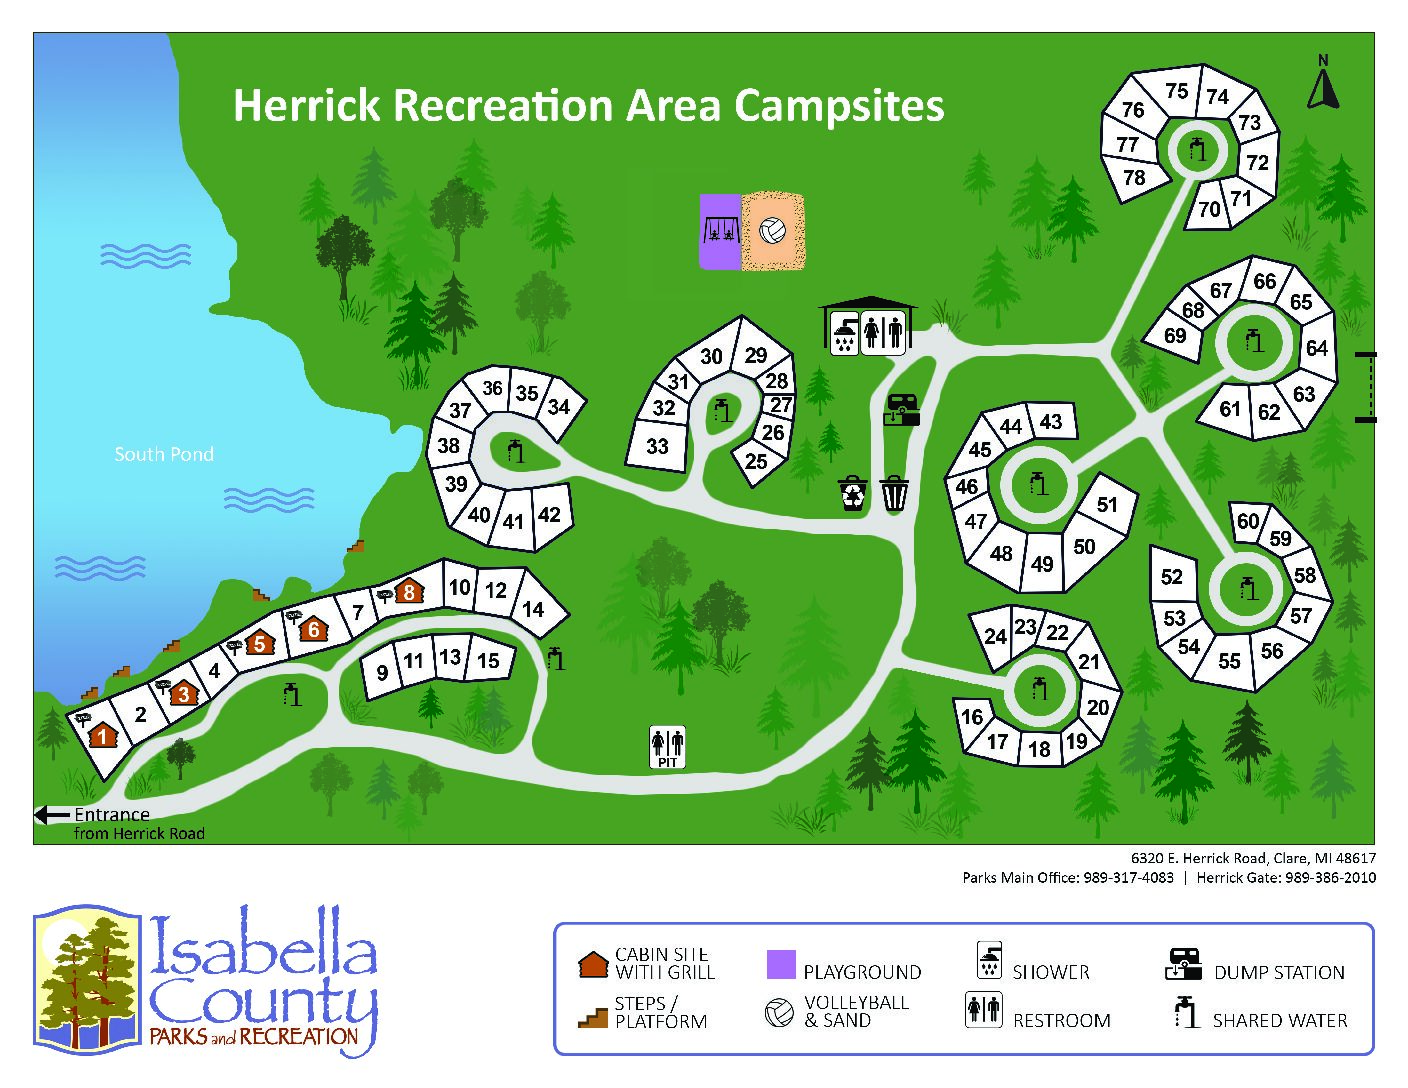 preview image of first page Herrick Recreation Campground Map